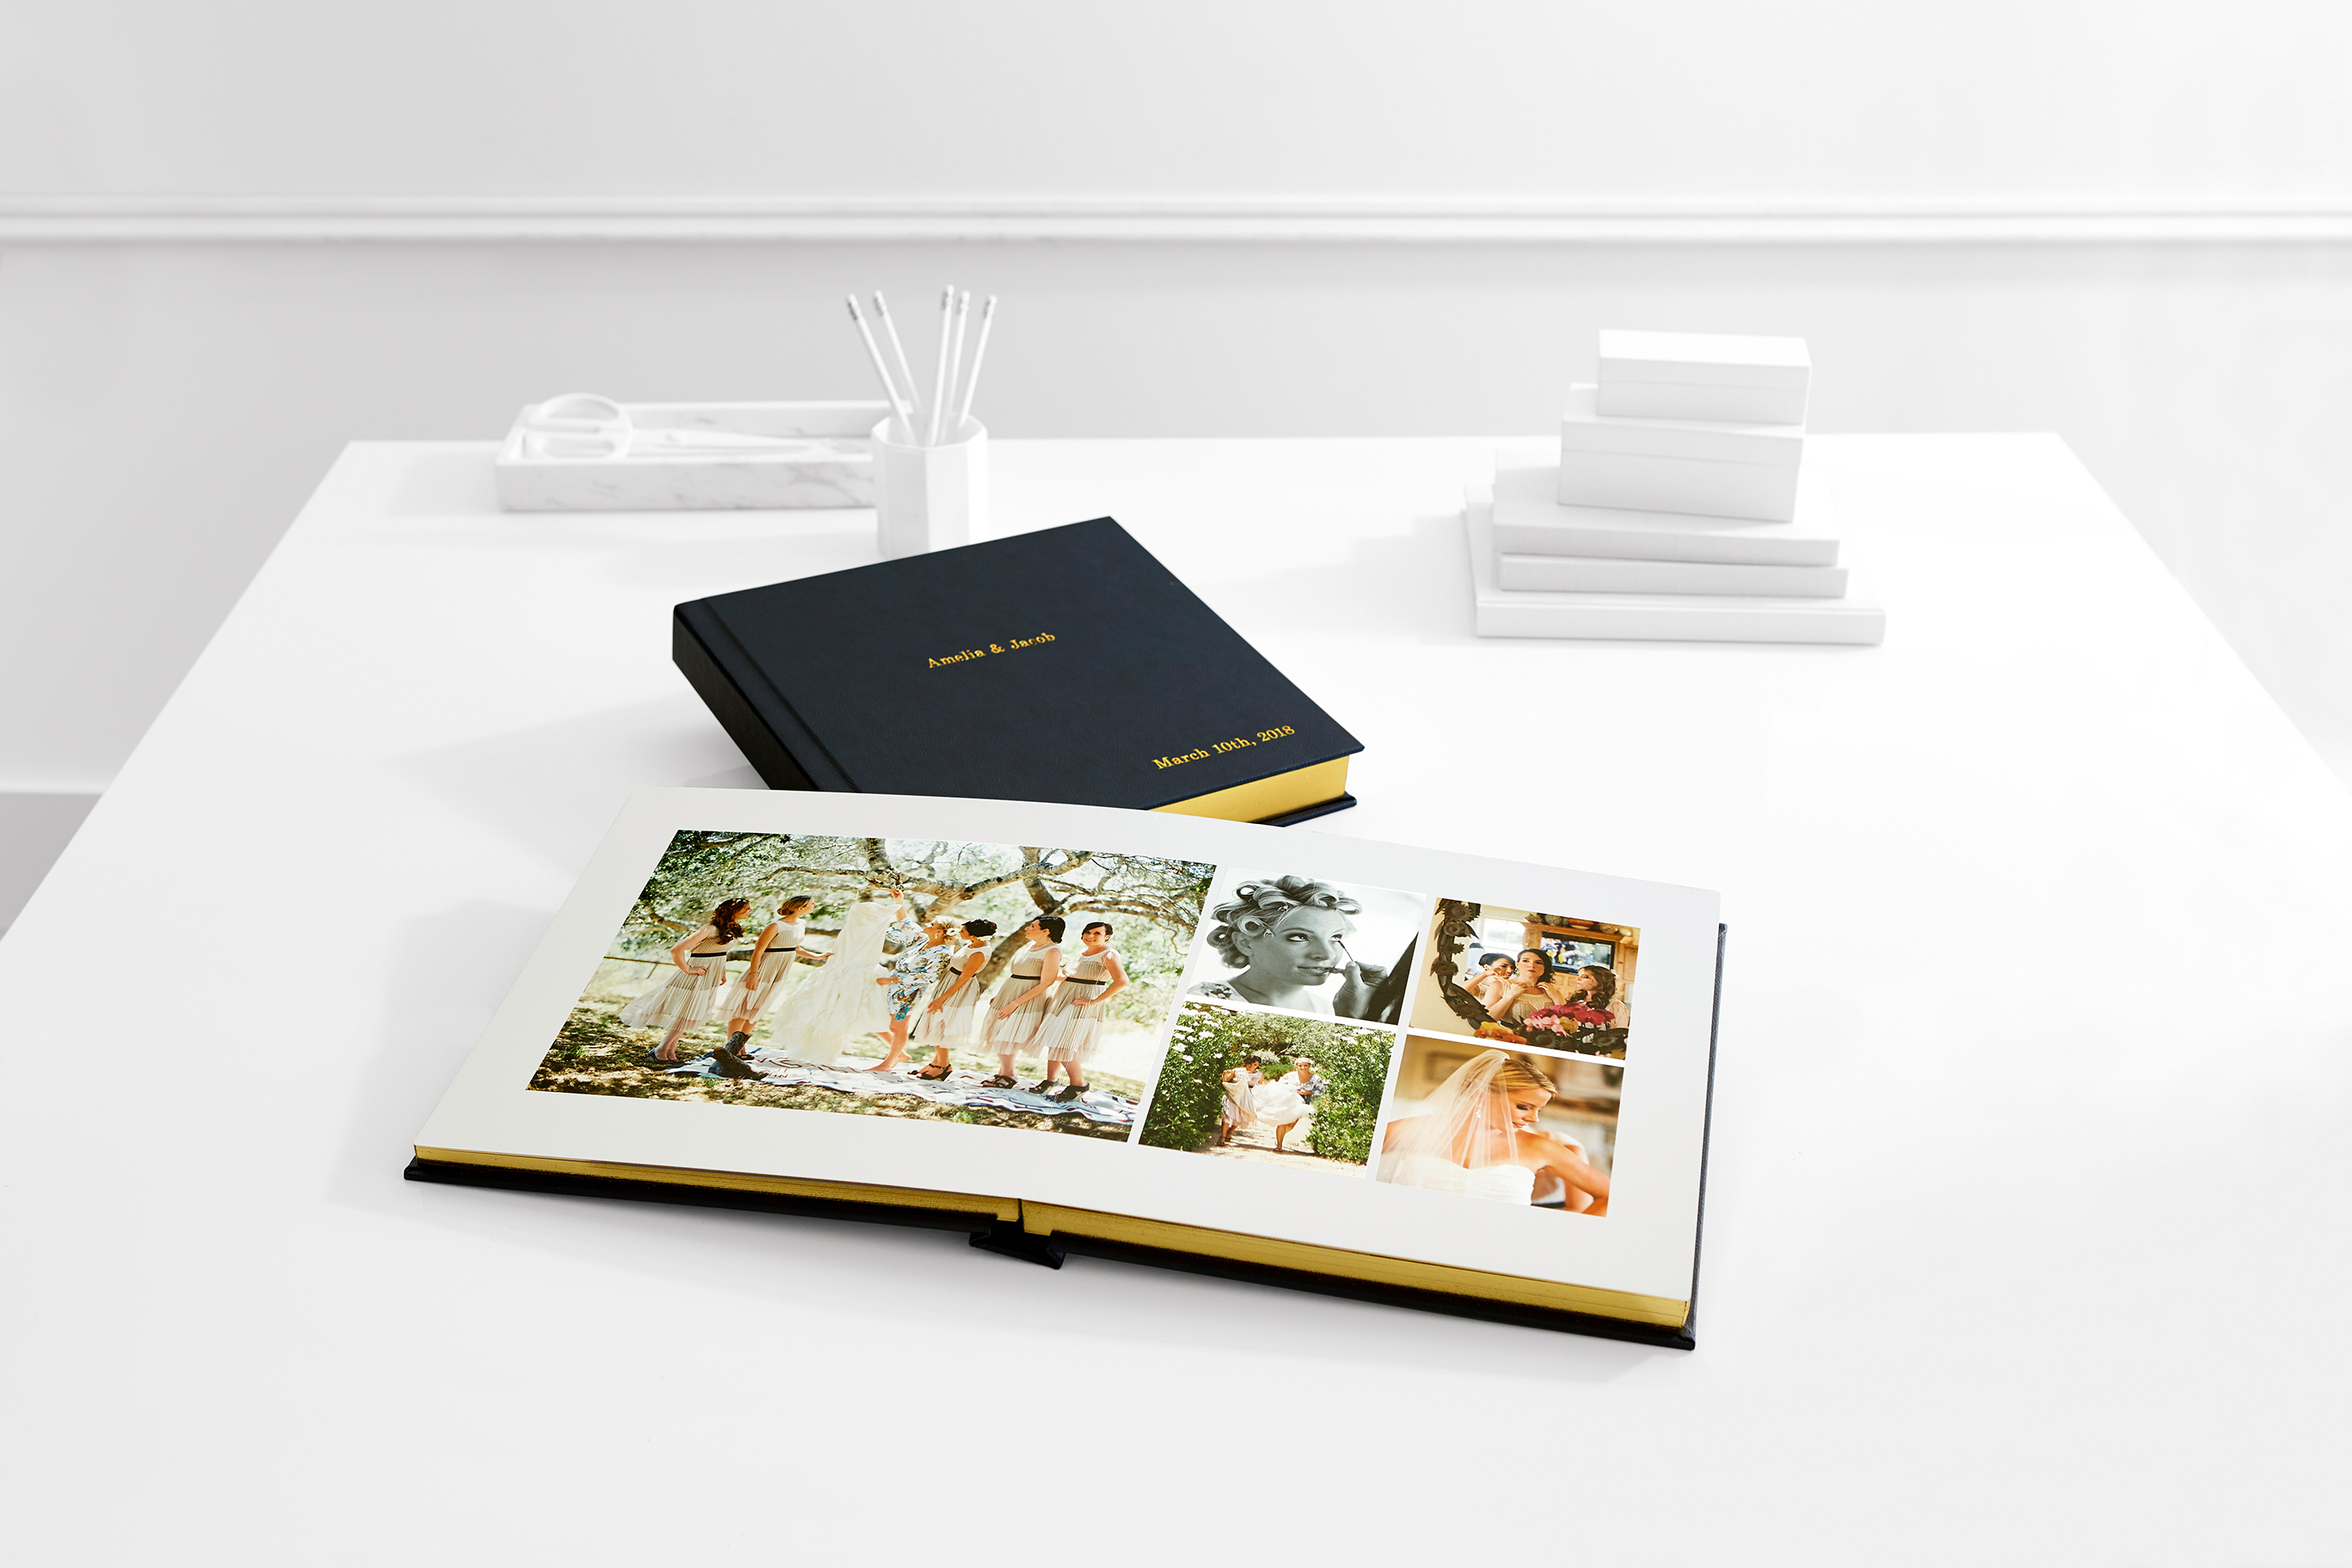 wedding photo album book leather cover with metallic accents